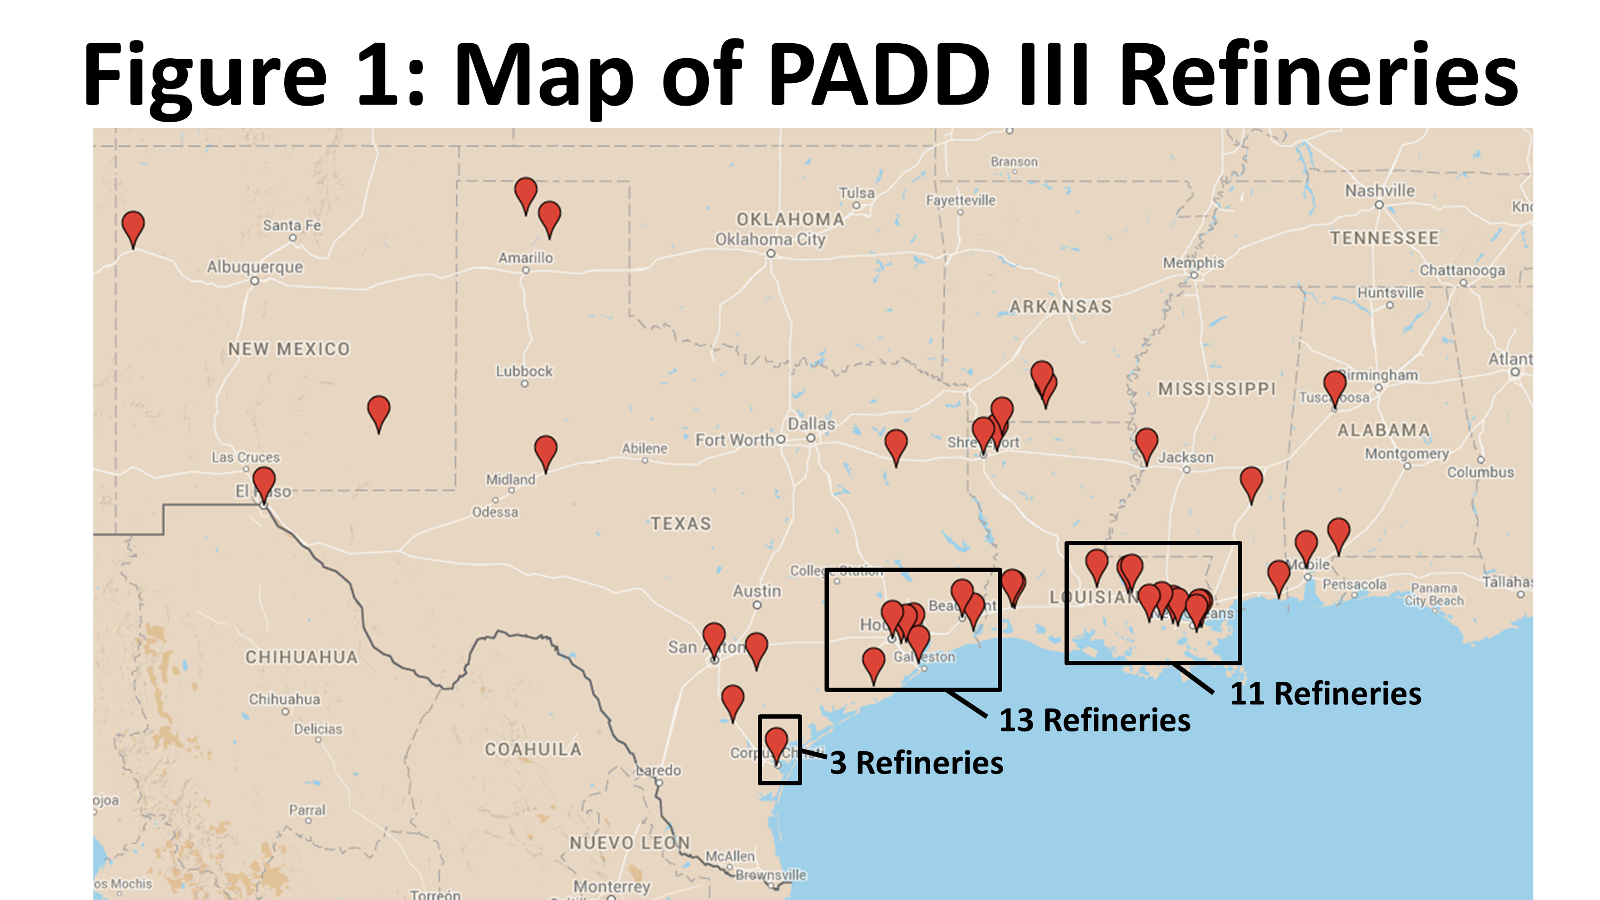 If You're Gonna Play In Texas, You Gotta Have A Fiddle (Coker) In - Texas Refineries Map